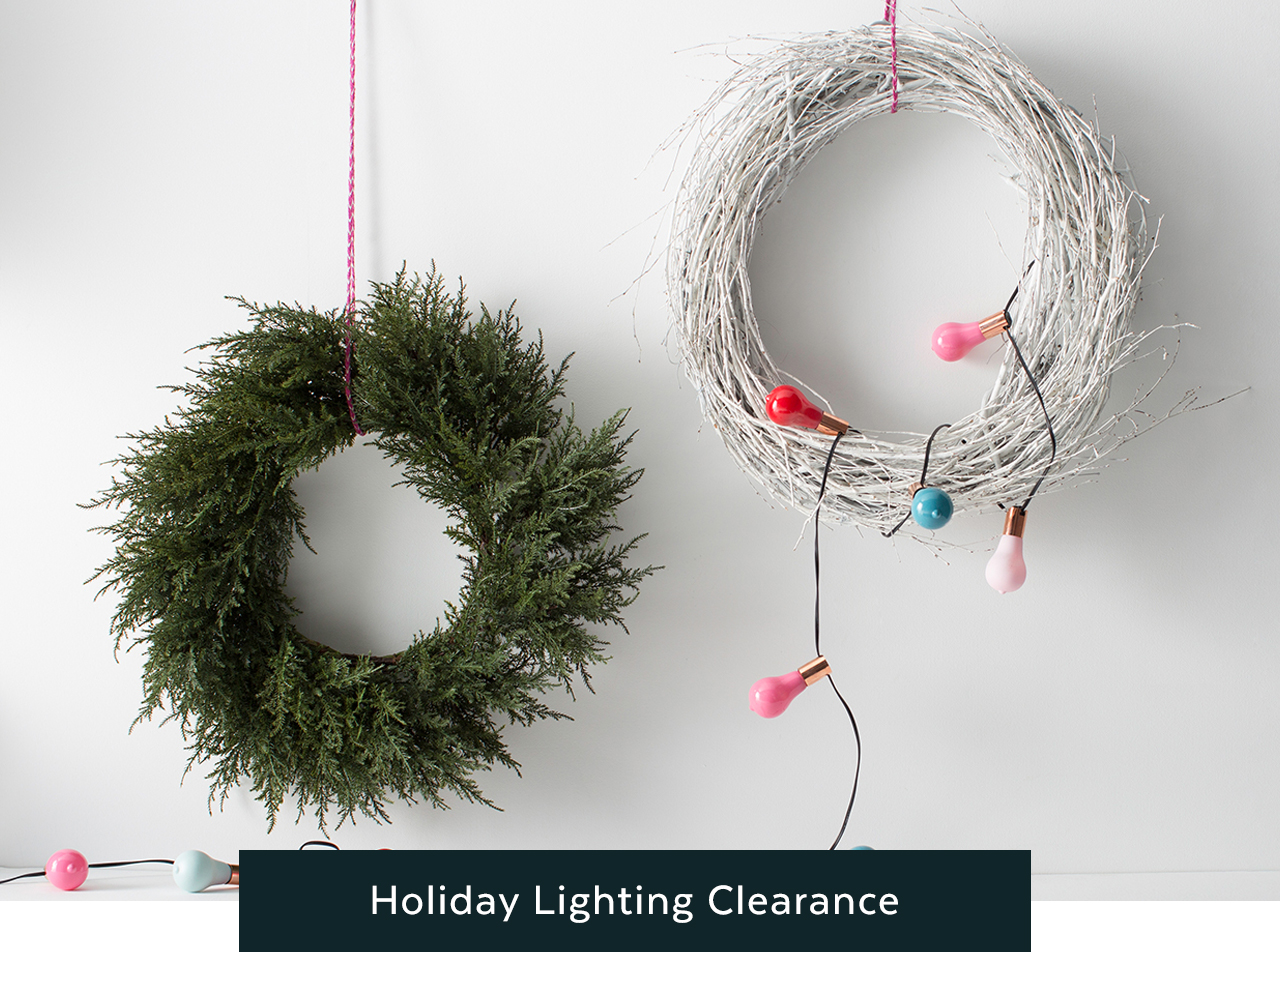 Holiday Lighting Clearance